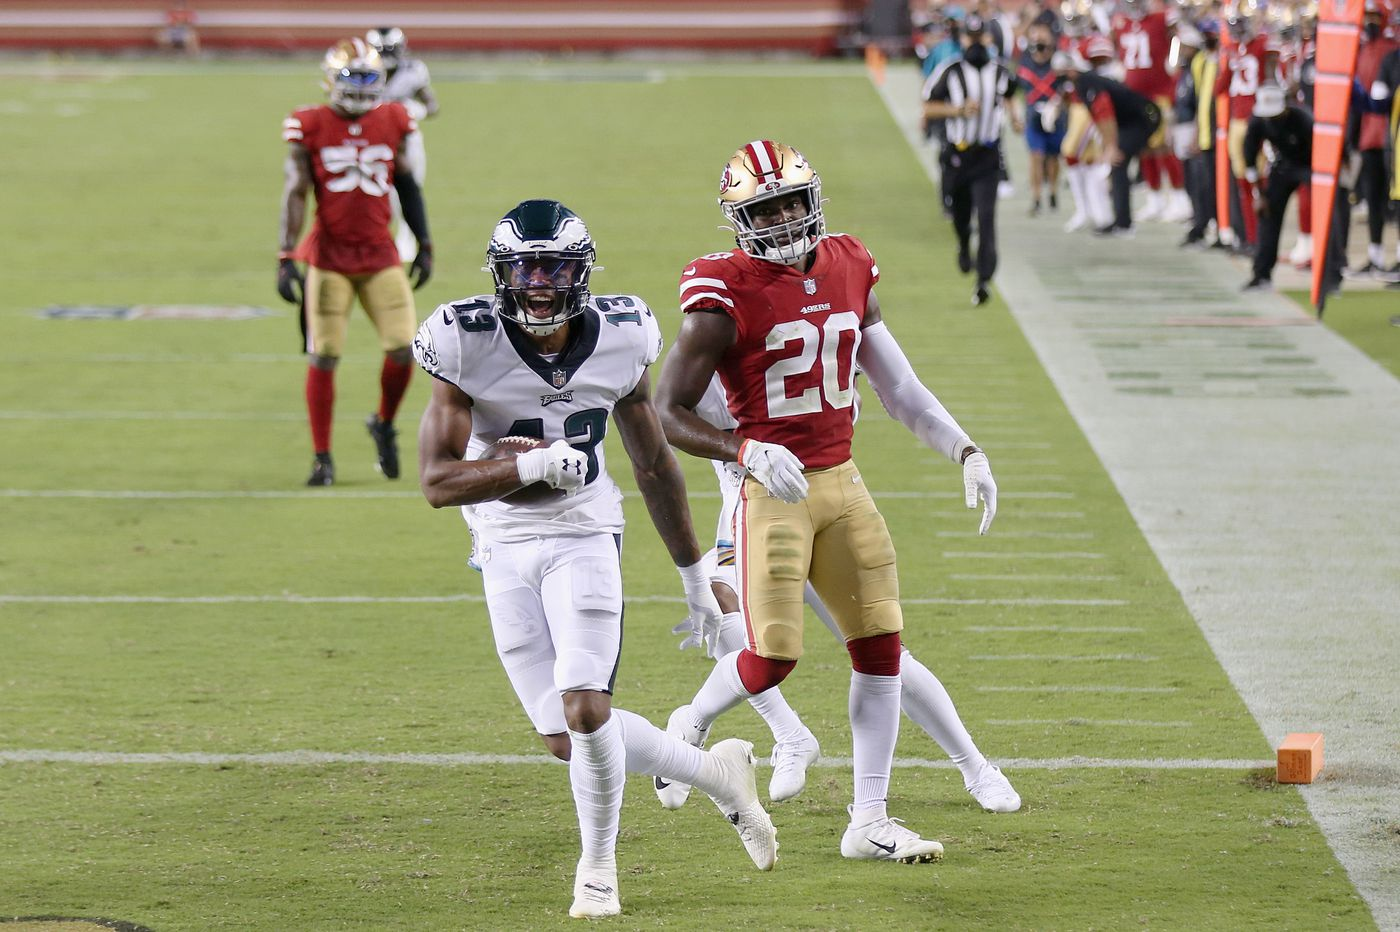 Eagles fans, meet Travis Fulgham, the practice-squad wide receiver whose touchdown sparked the win over the 49ers